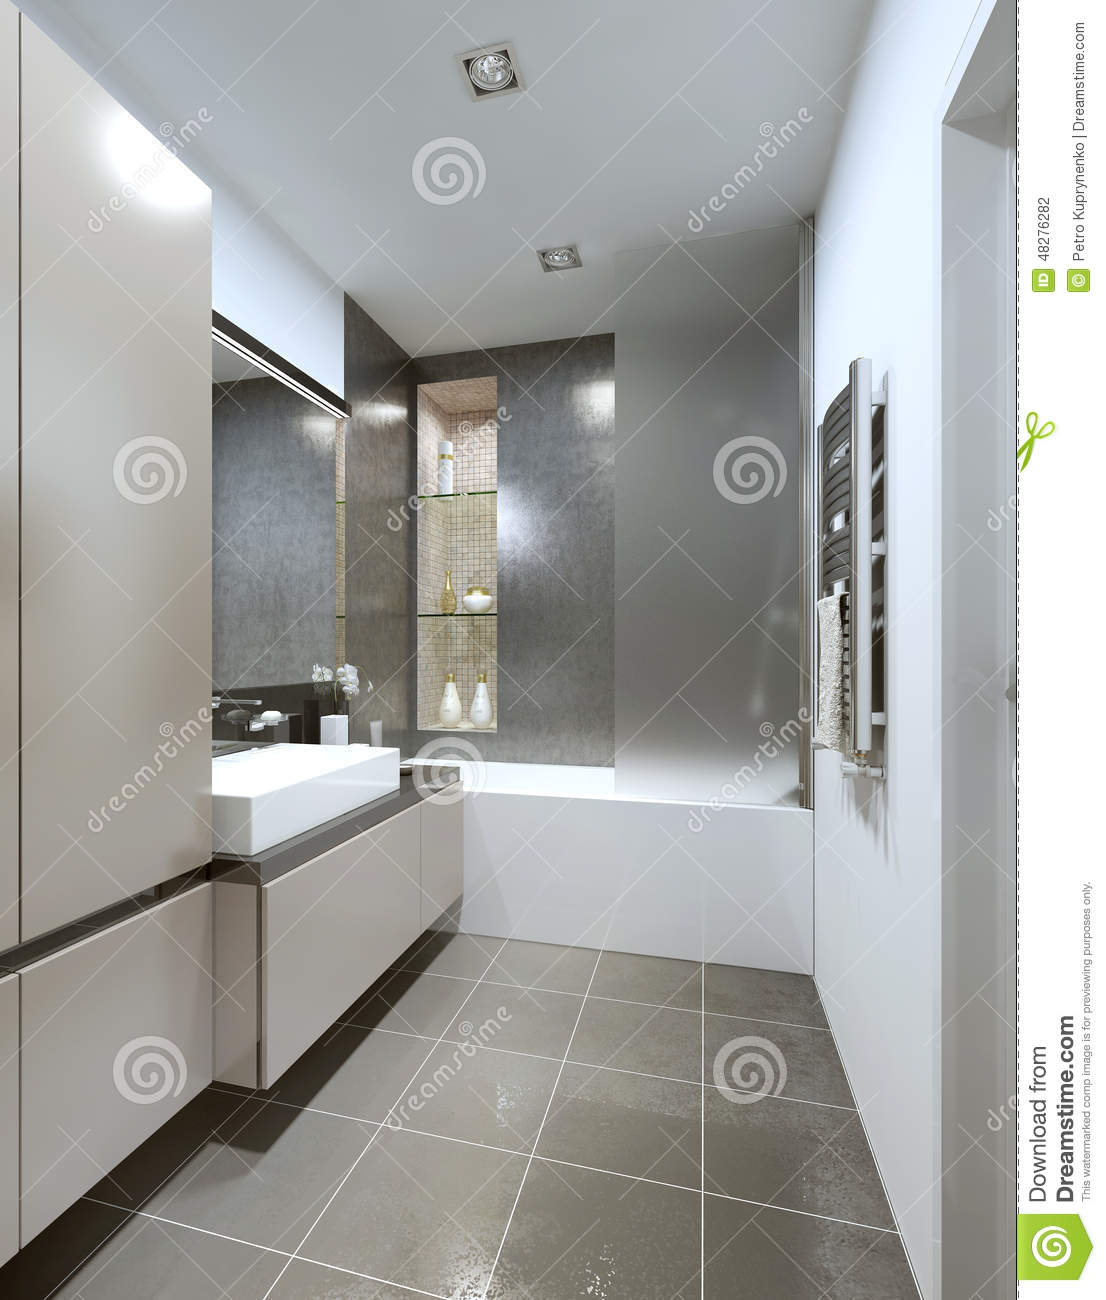 Contemporary style bathroom royalty free stock photo for Bathroom fashion